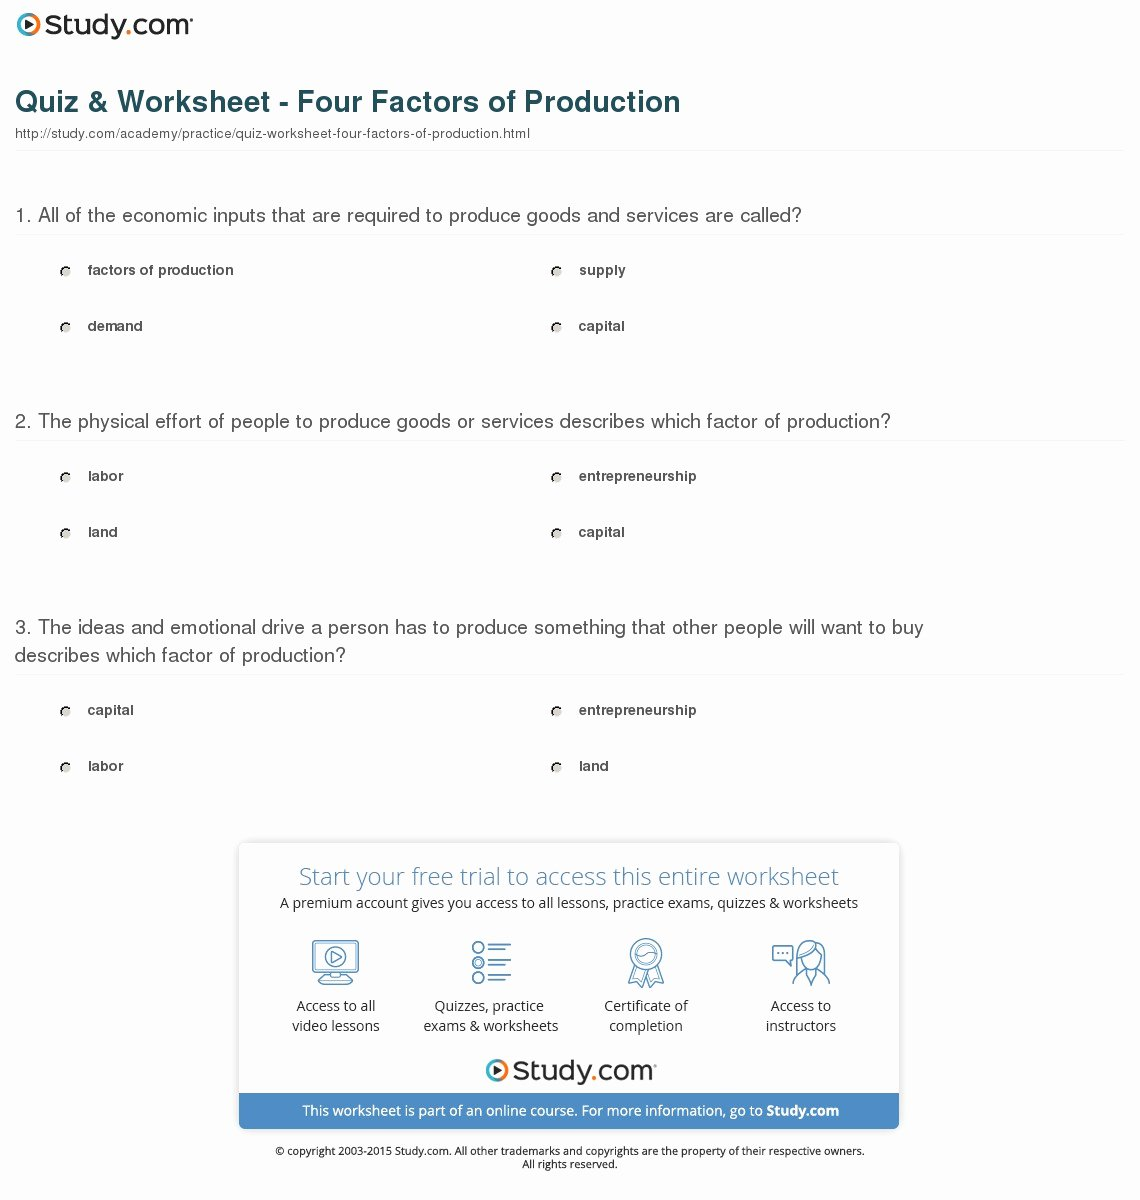 Factors Of Production Worksheet Answers Beautiful Quiz & Worksheet Four Factors Of Production